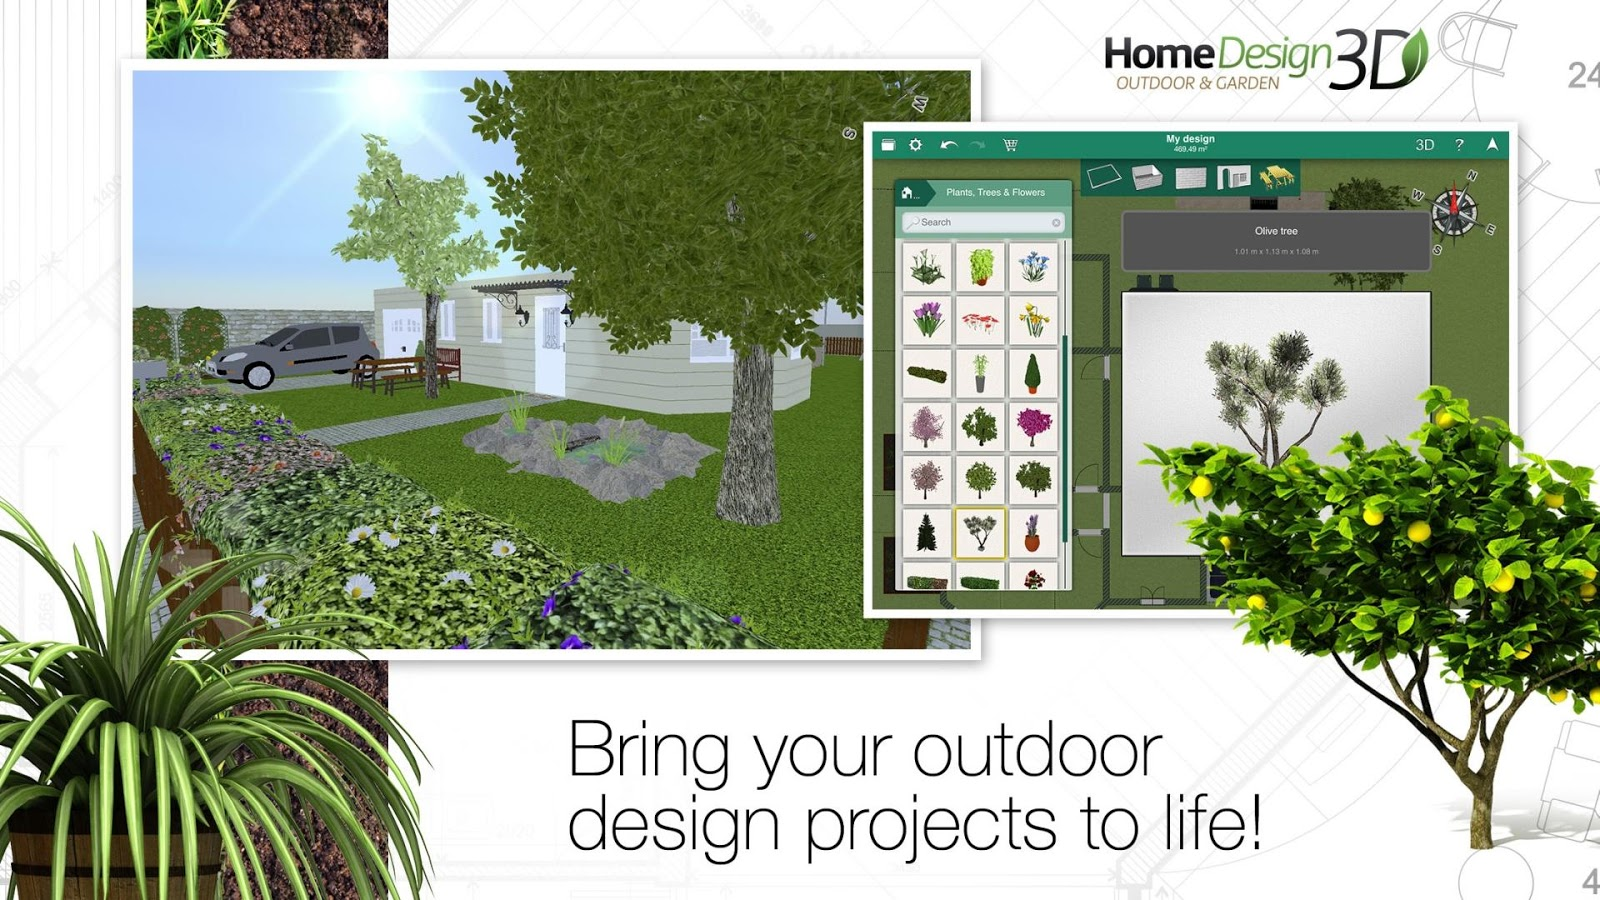 Home design 3d outdoor garden android apps on google play for Home design 3d 5 0 crack